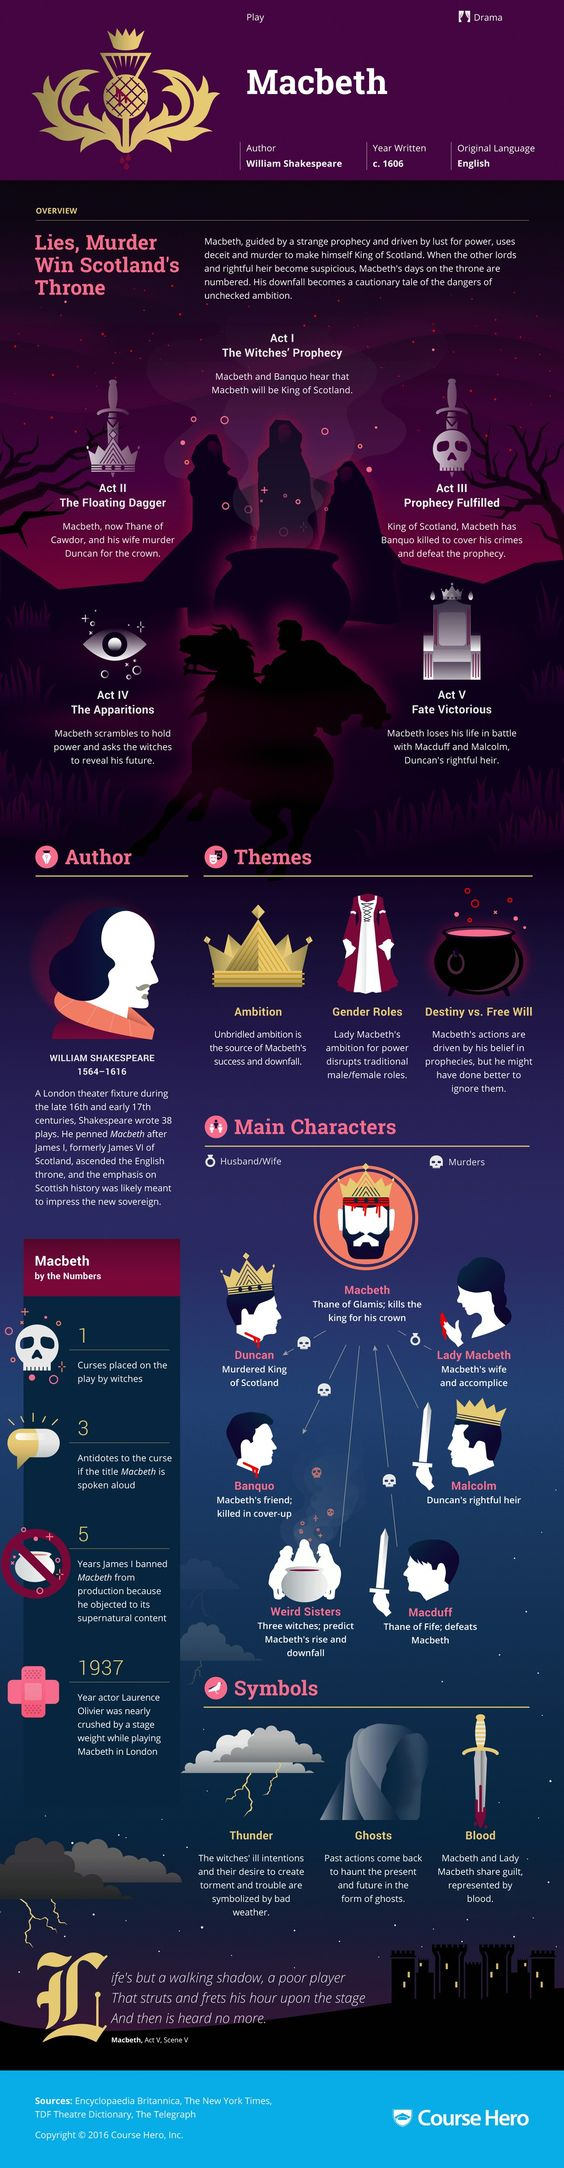 Macbeth Infographic | Course Hero: